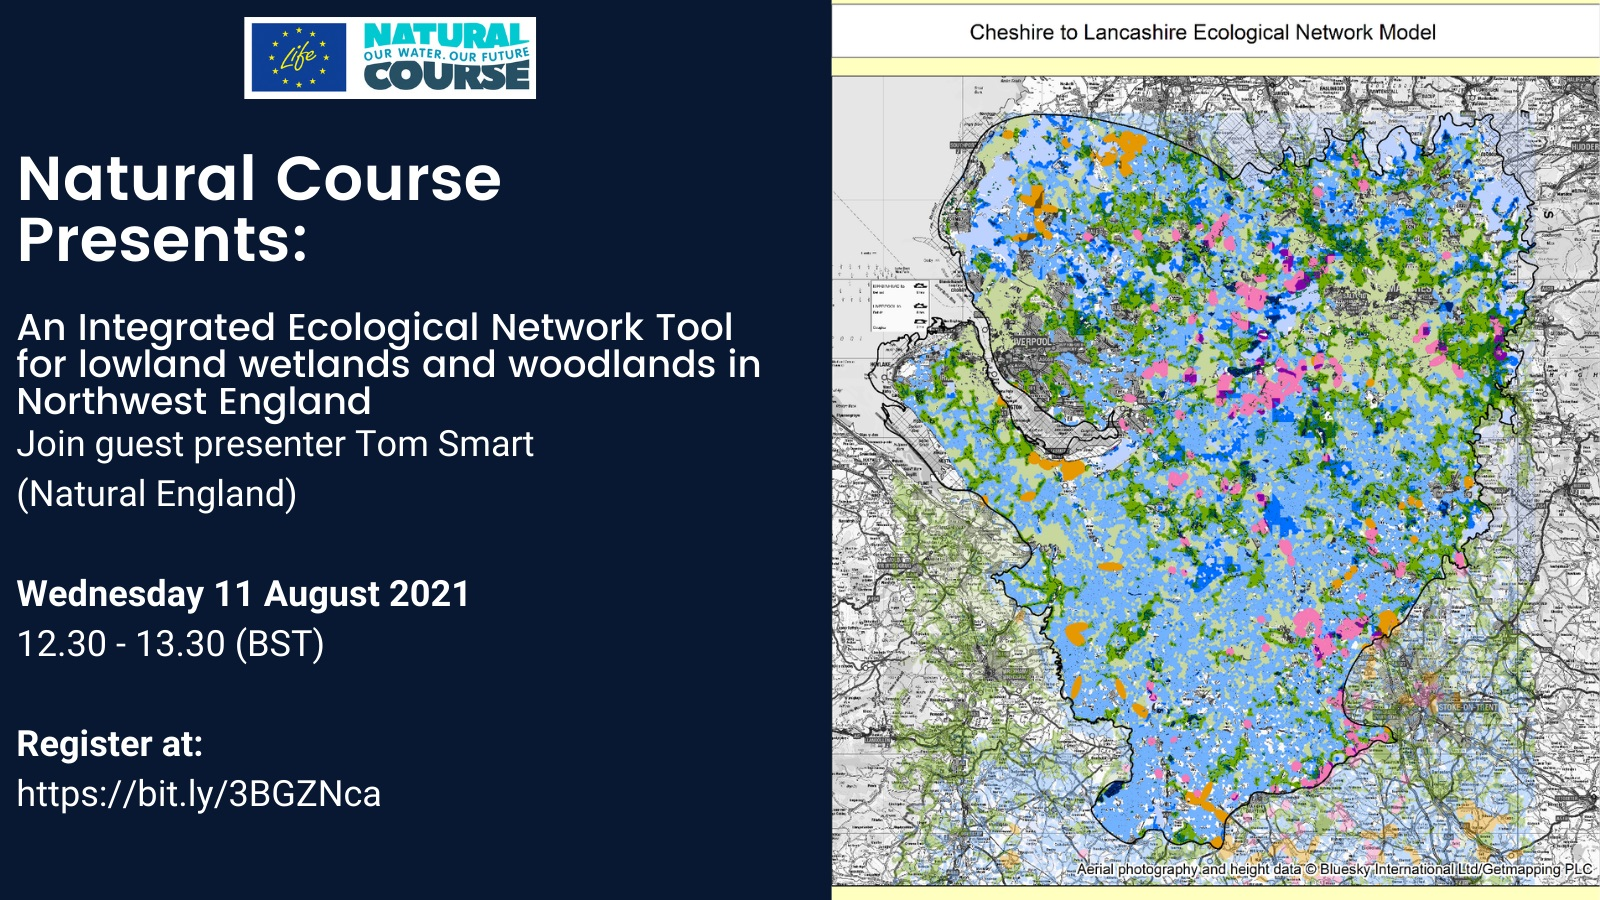 Natural Course Presents: The Integrated Ecological Network Tool